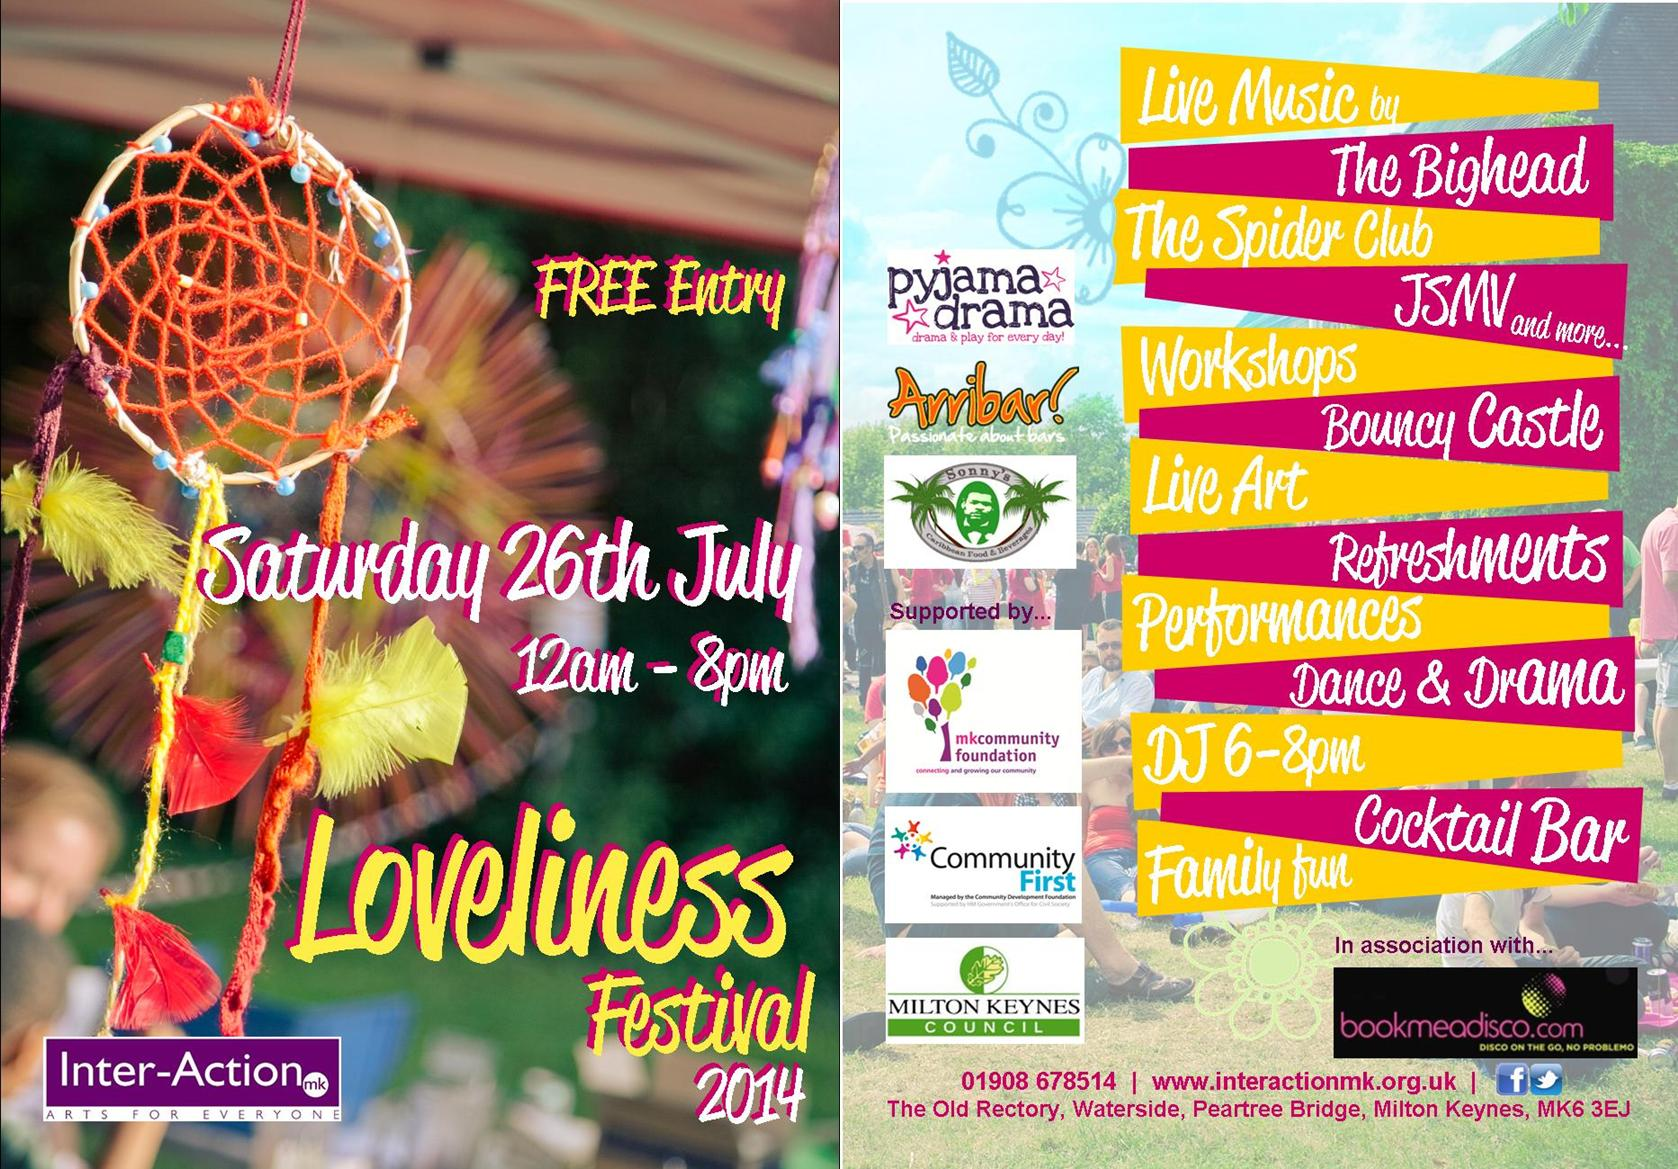 Loveliness Flier 2014 together